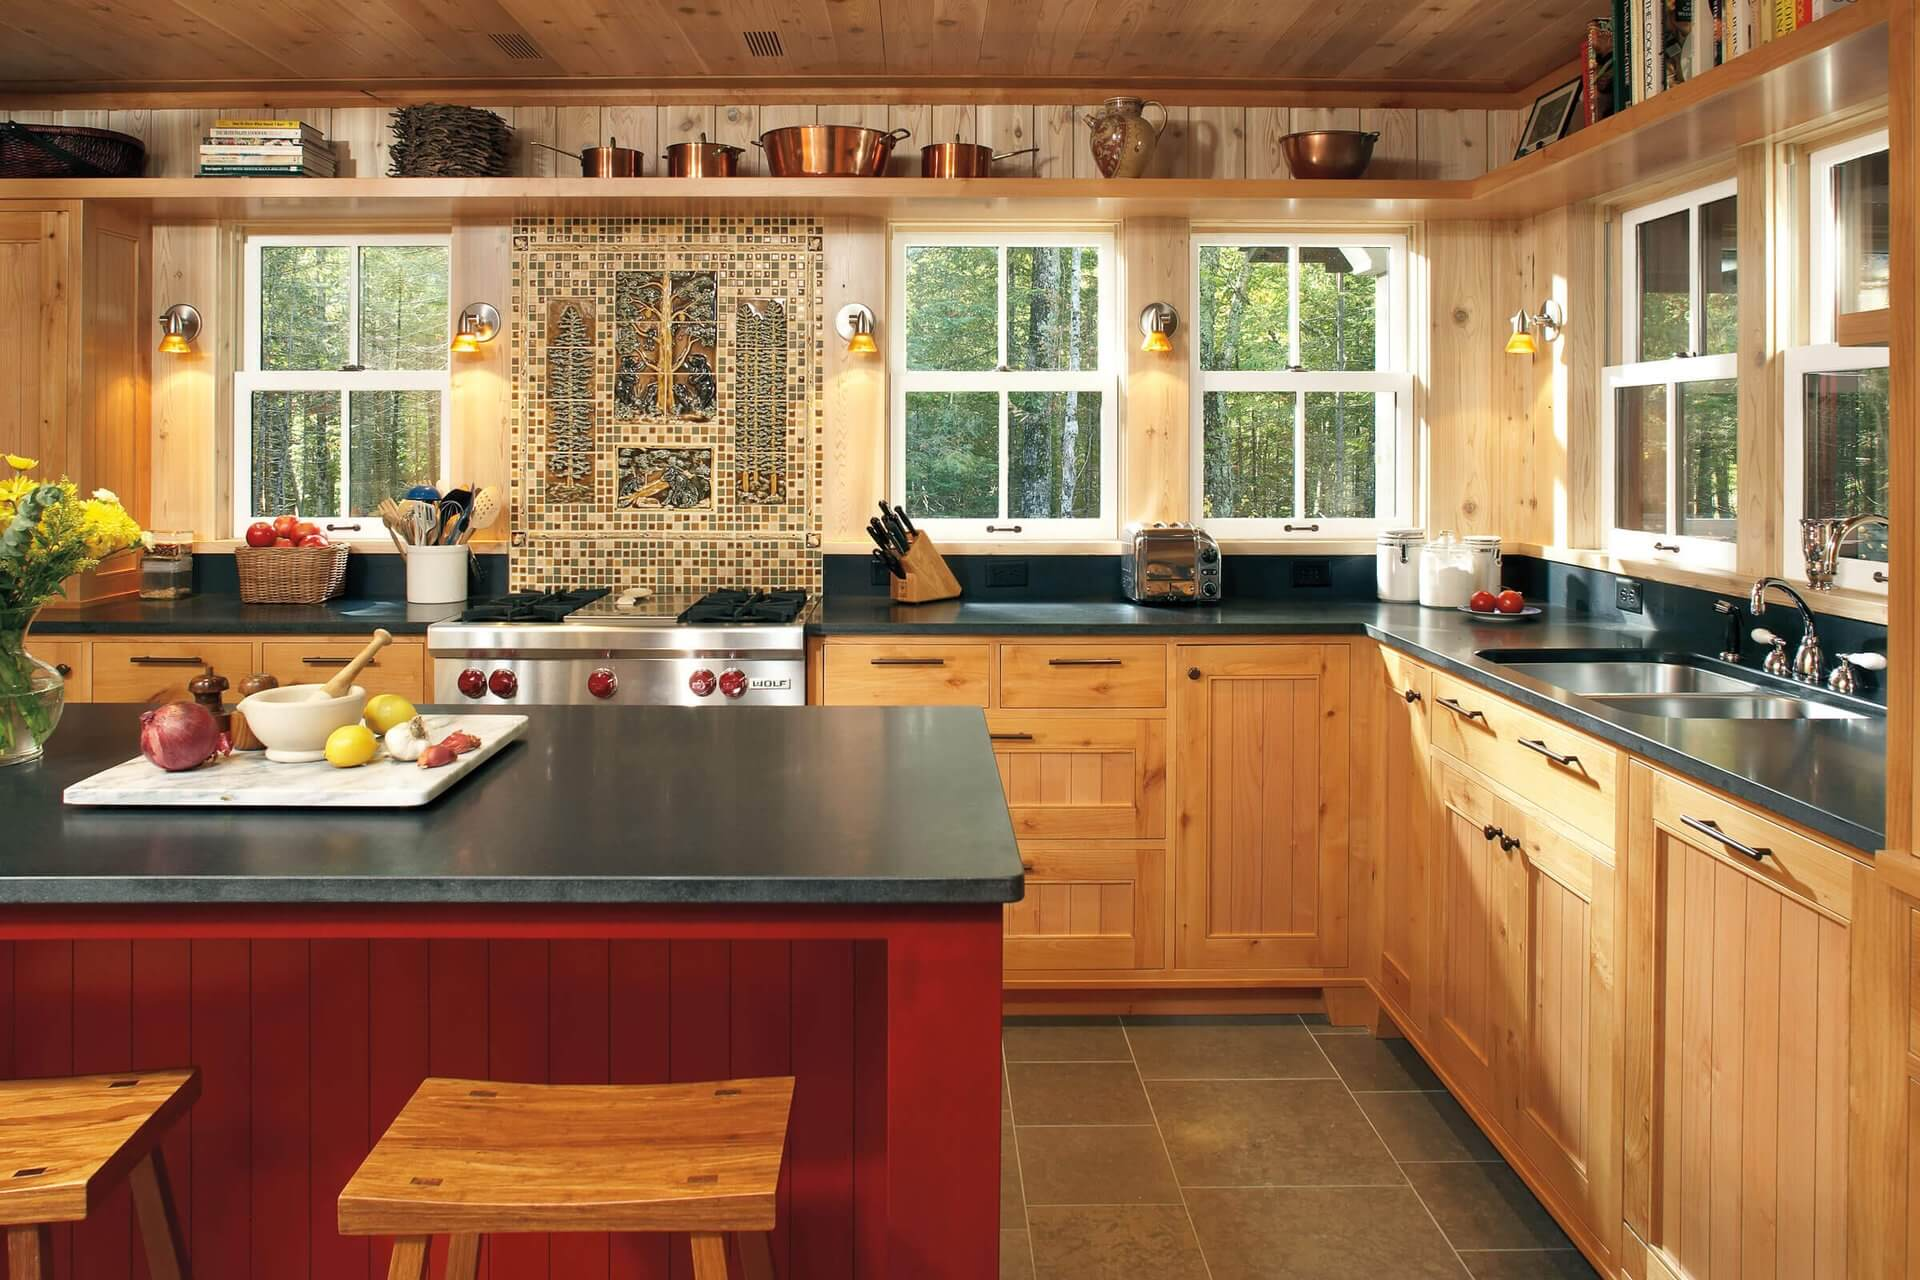 marvin-signature-ultimate-wood-single-hung-myr-kitchen